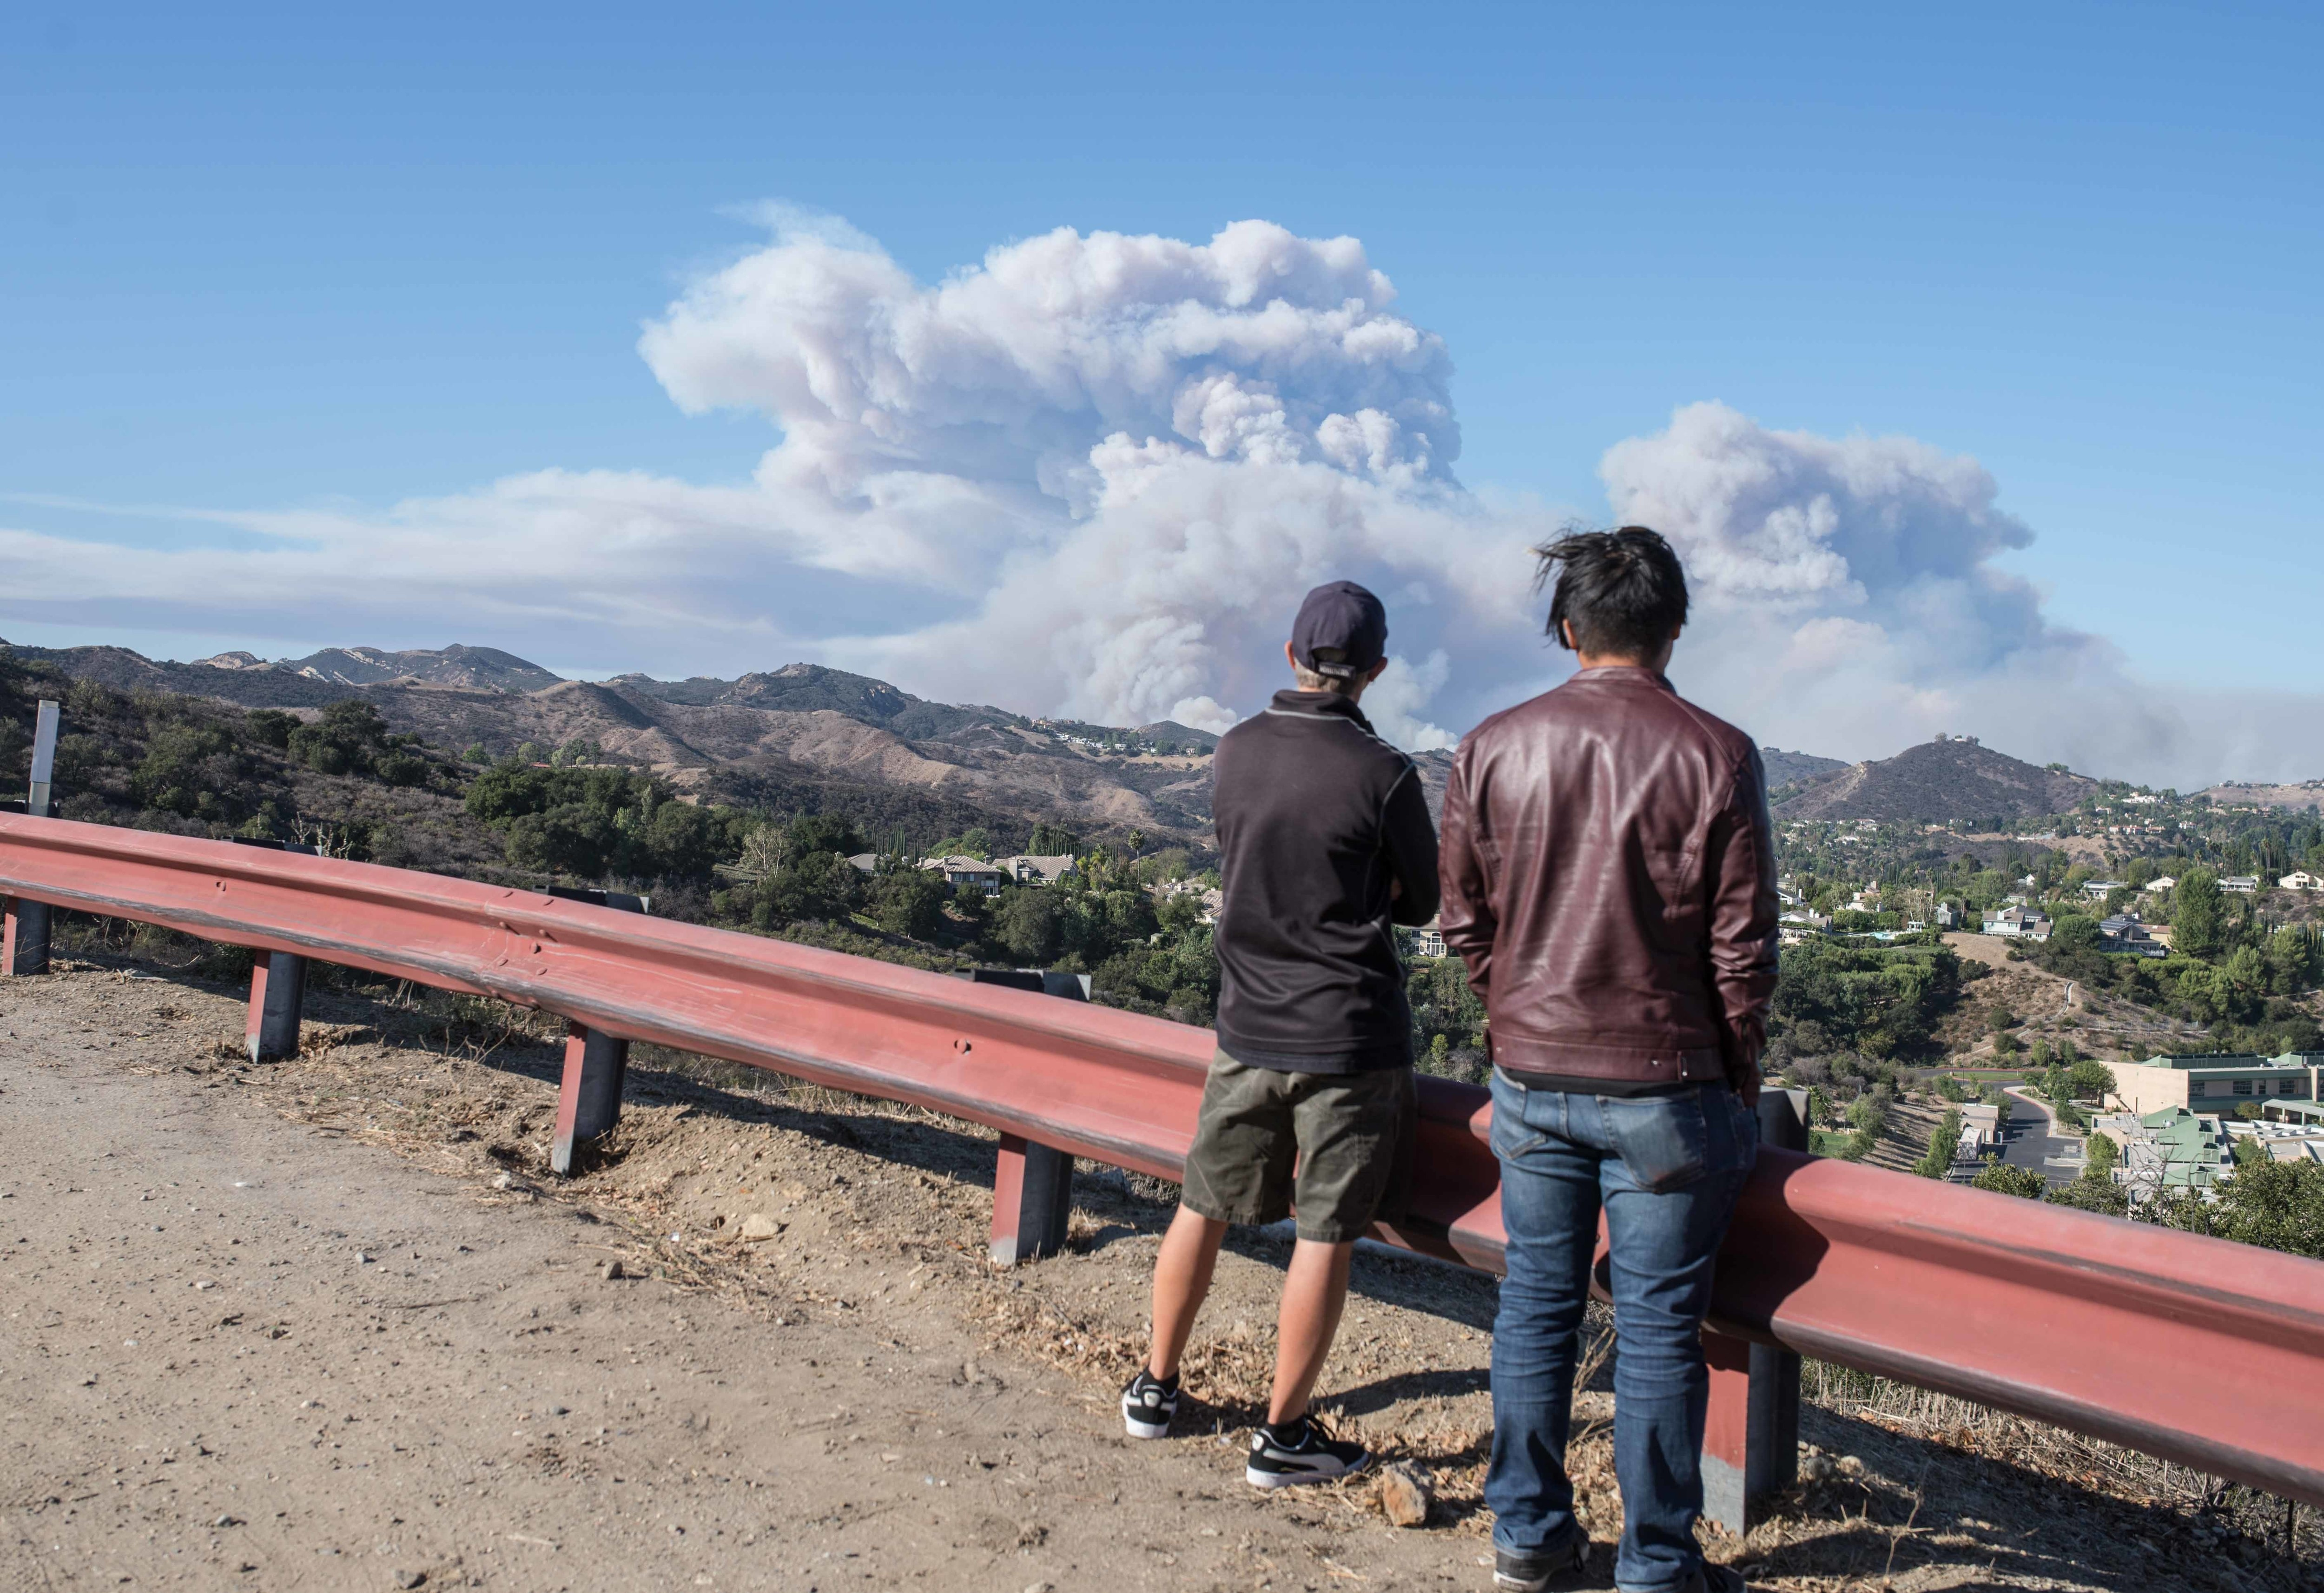 Before the Fire: Protecting Vulnerable Communities From Wildfire